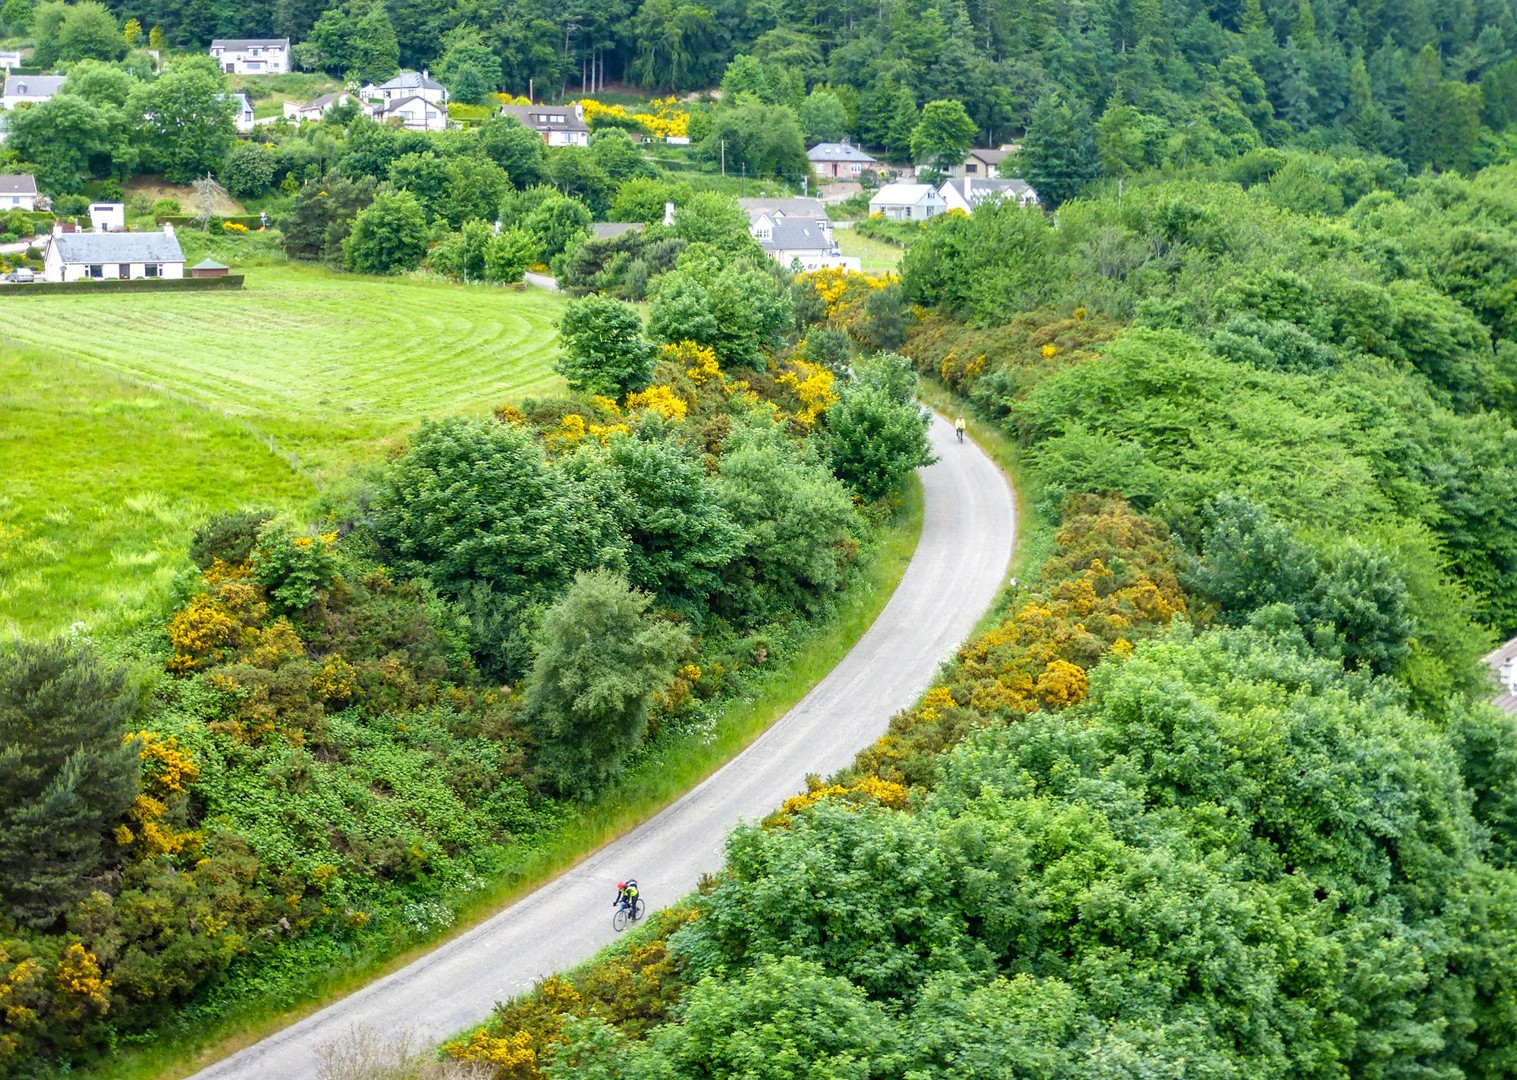 uk-lands-end-to-john-ogroats-cycling-britain-guided-road-holiday.jpg - UK - Land's End to John O'Groats Explorer (22 days) - Guided Cycling Holiday - Road Cycling